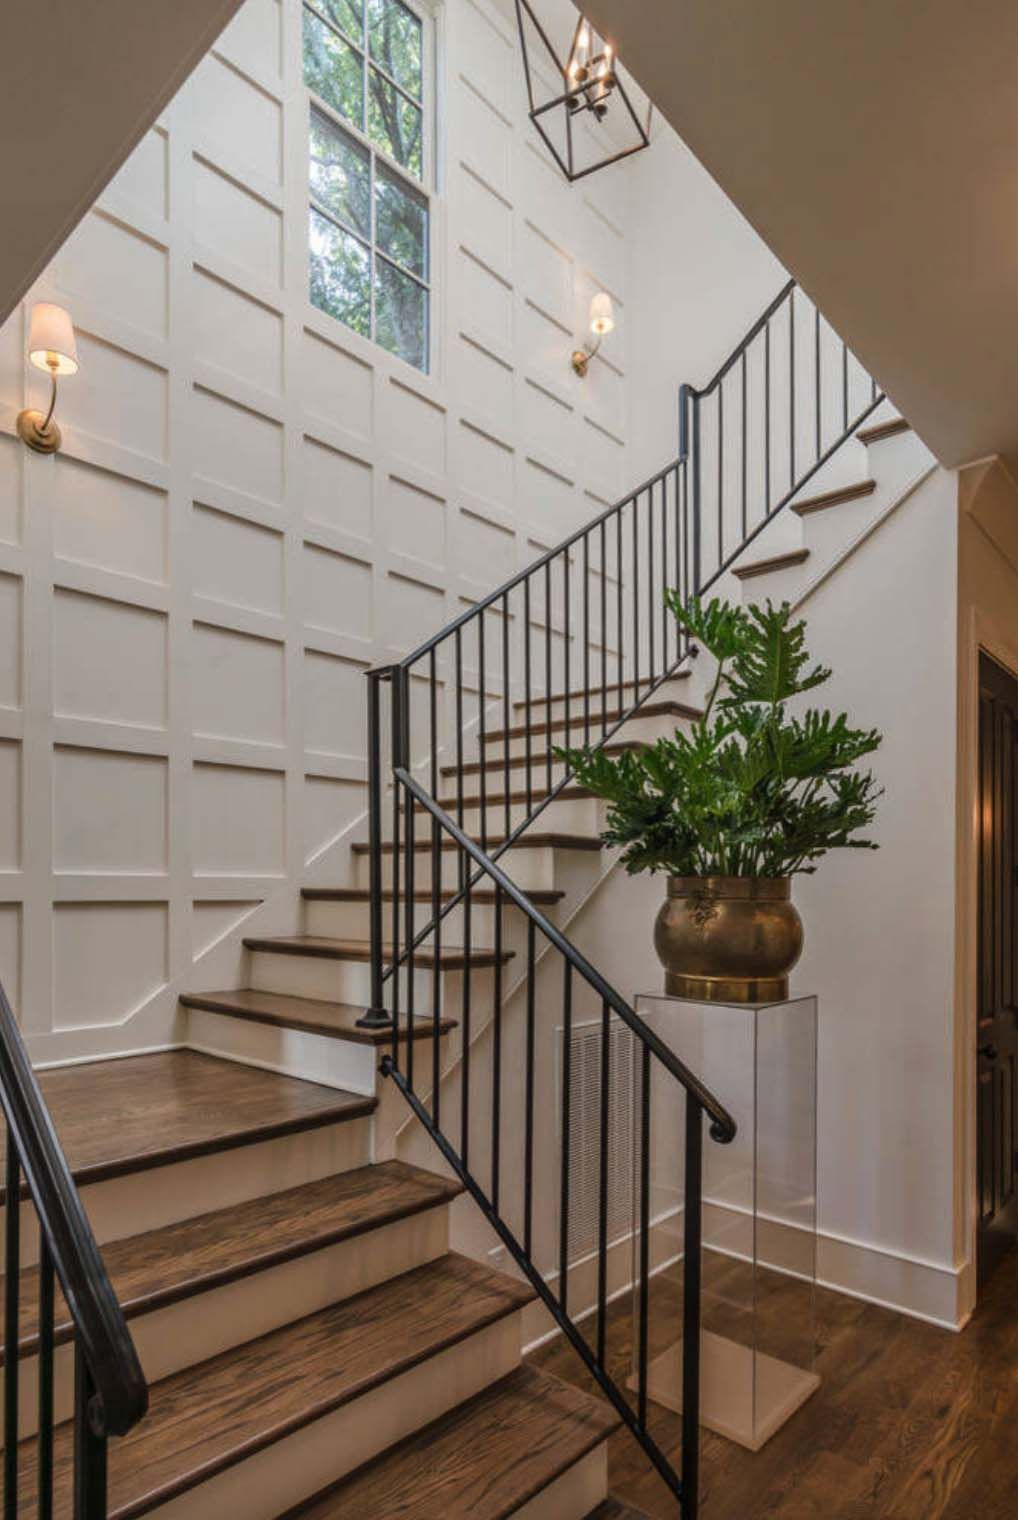 Cape Dutch Style Home In Tennessee Opens To Stylish Interiors House Design Stairwell Wall House Styles